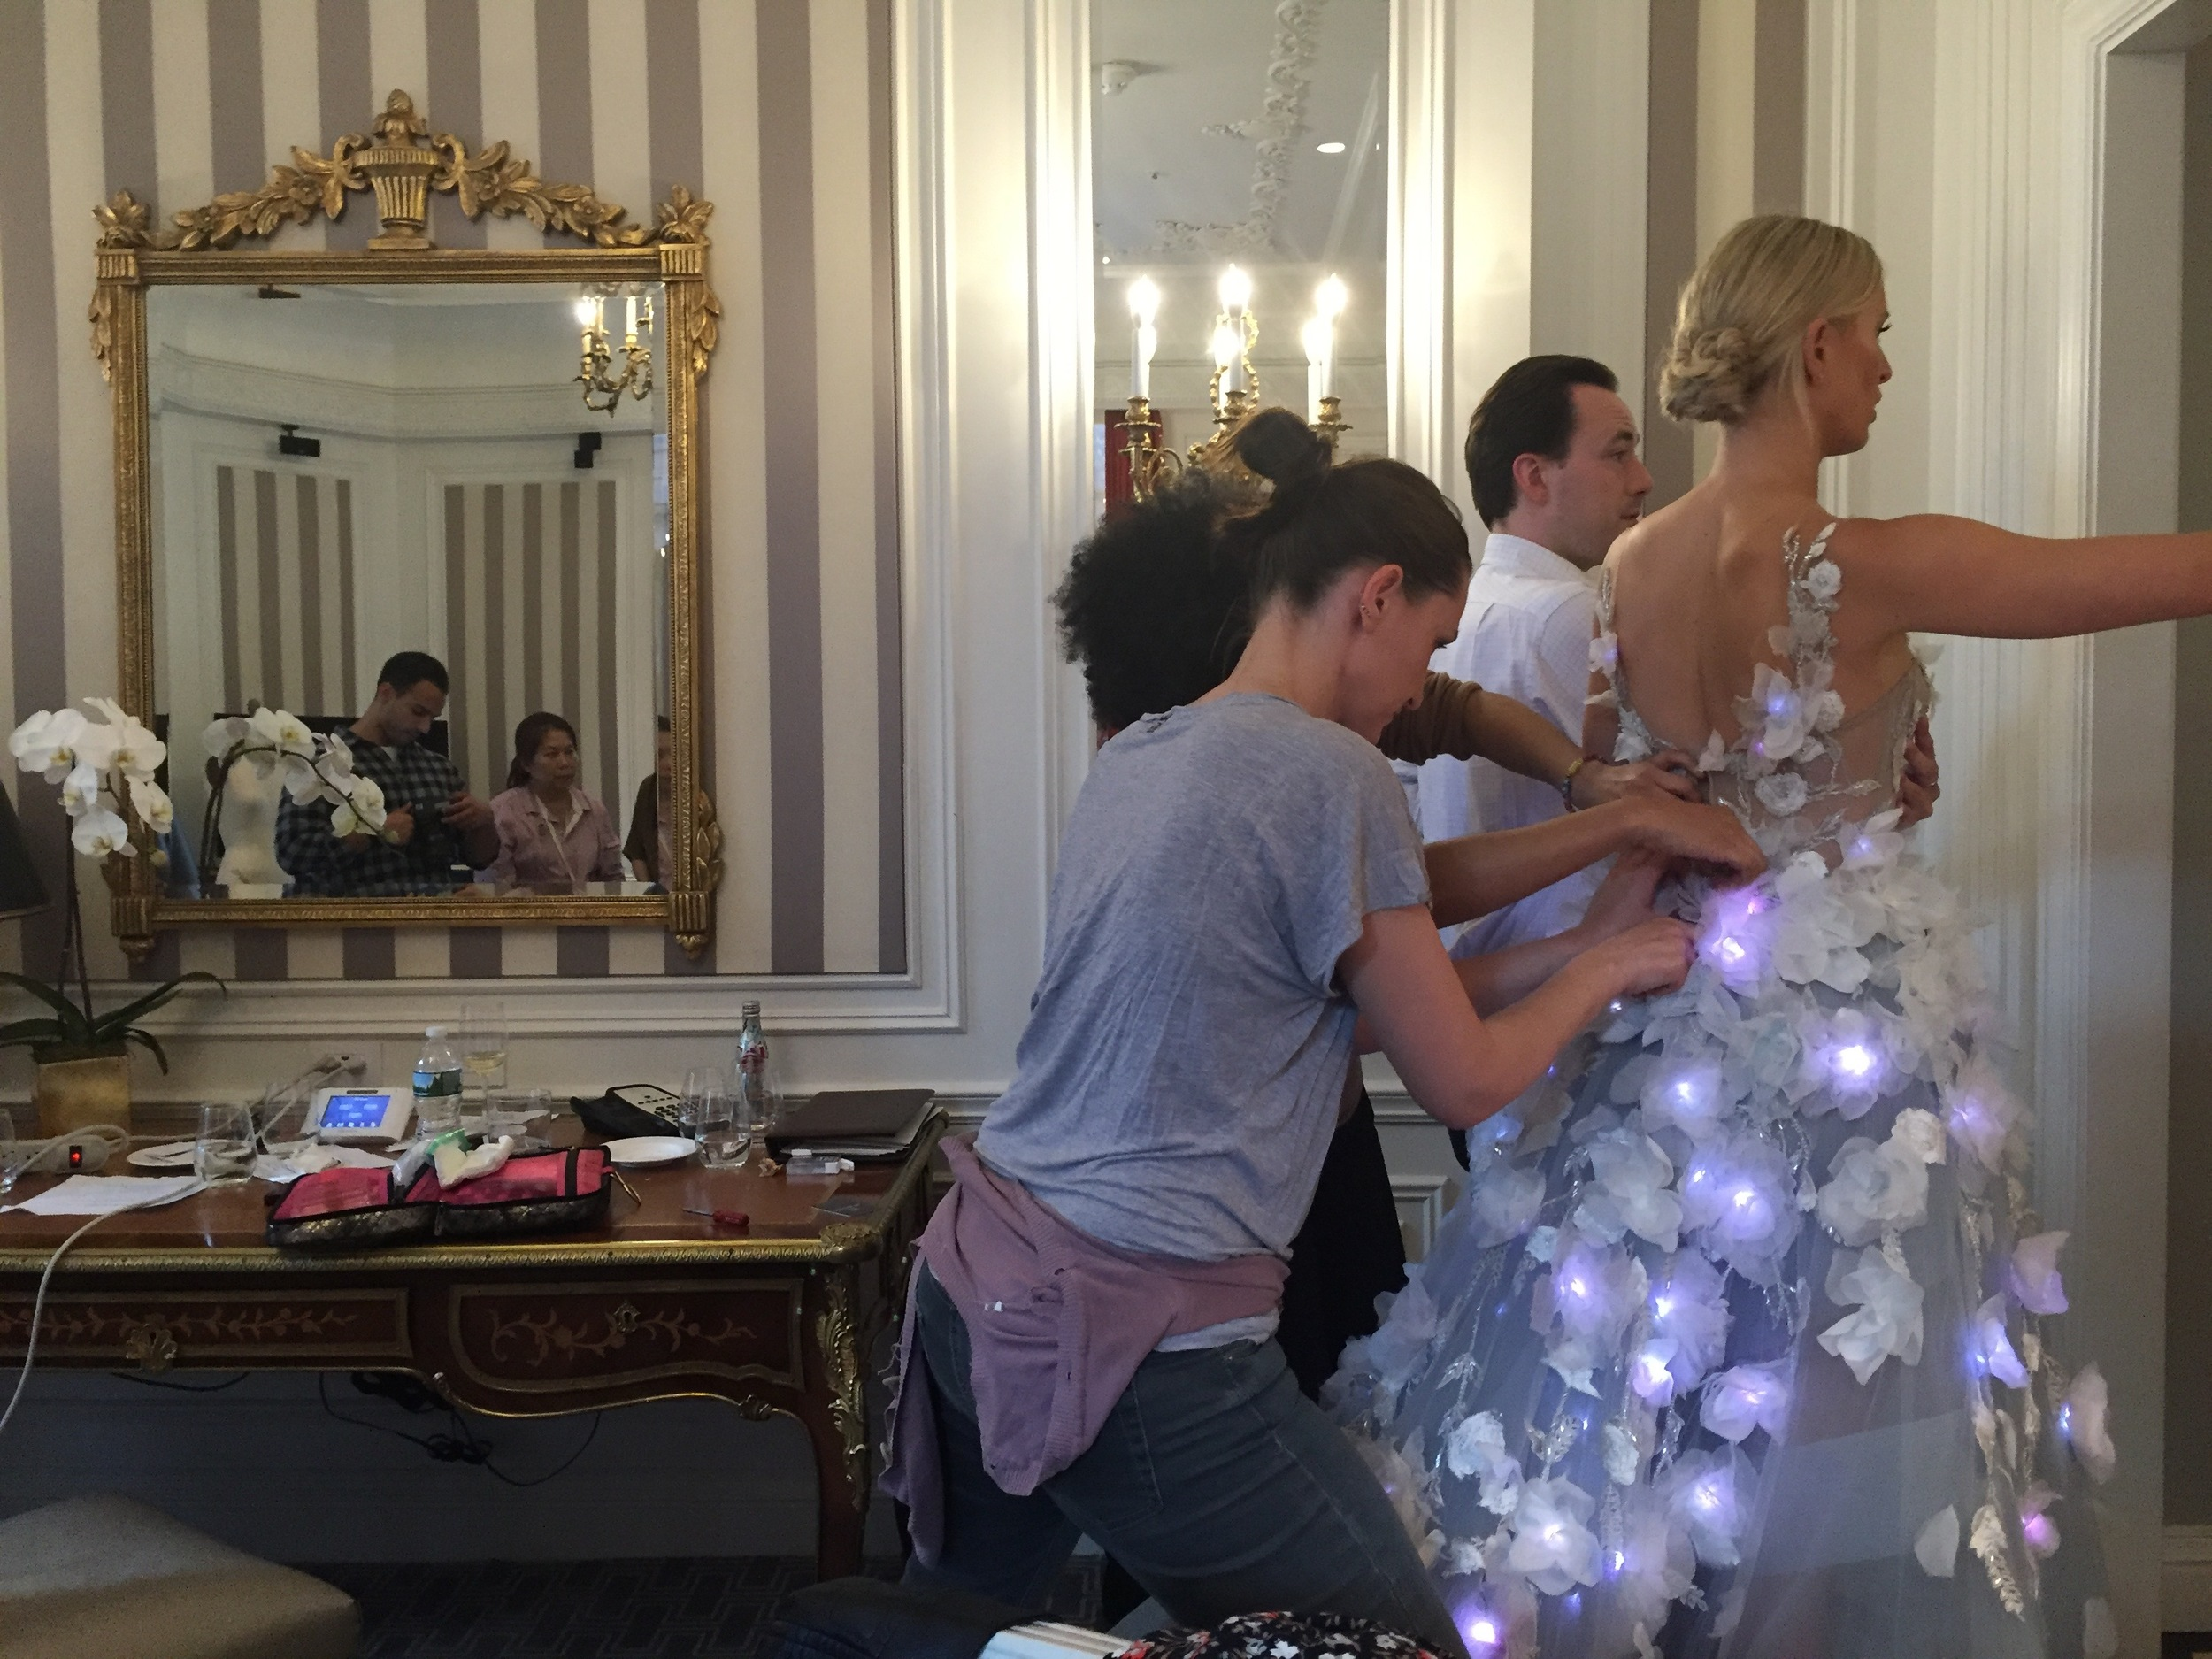 Karolina Kurkova rushes out of the hotel suite while we upload new code over the air